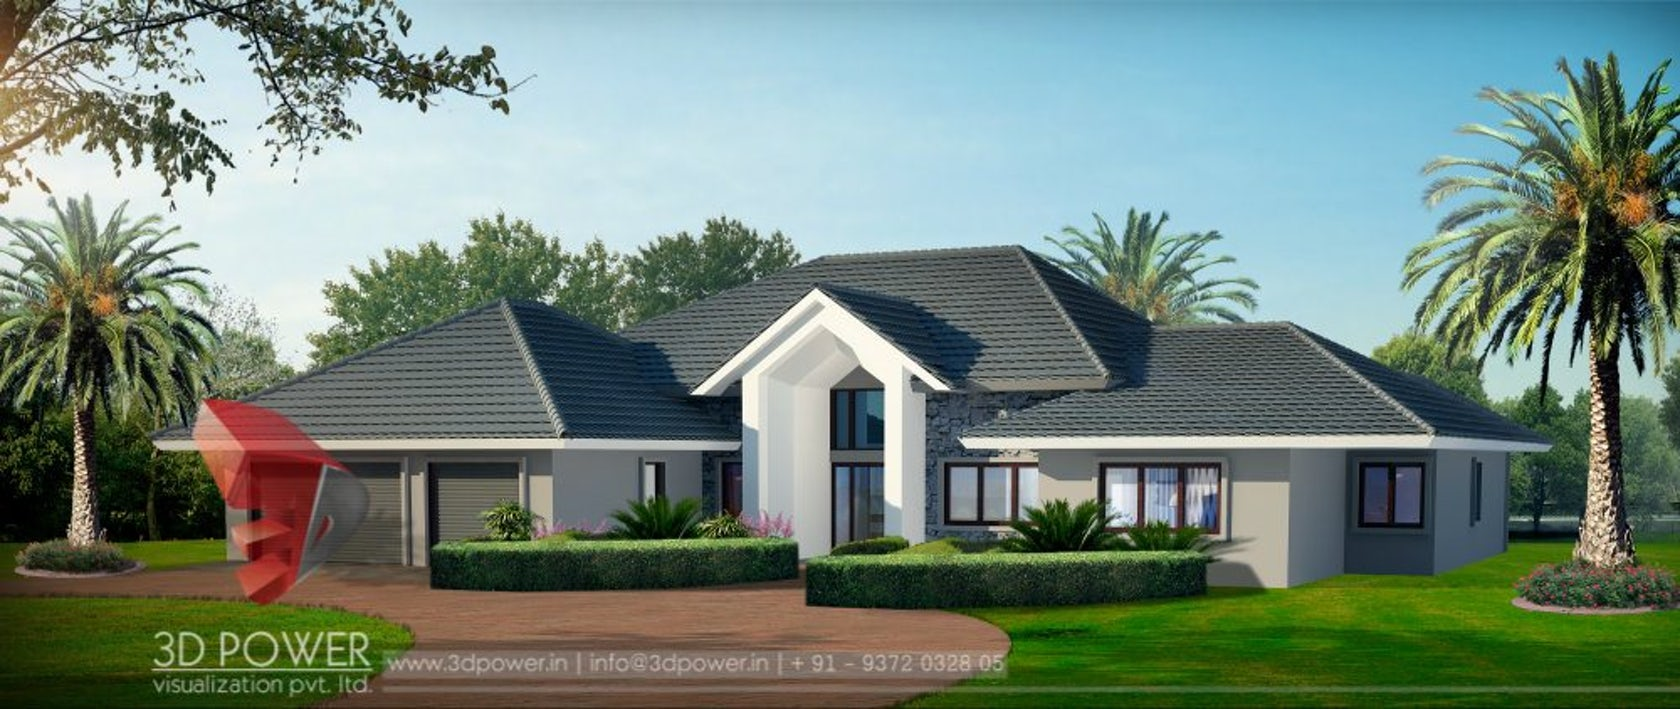 American 3d modern bungalow exterior rendering and for Bungalow exterior design